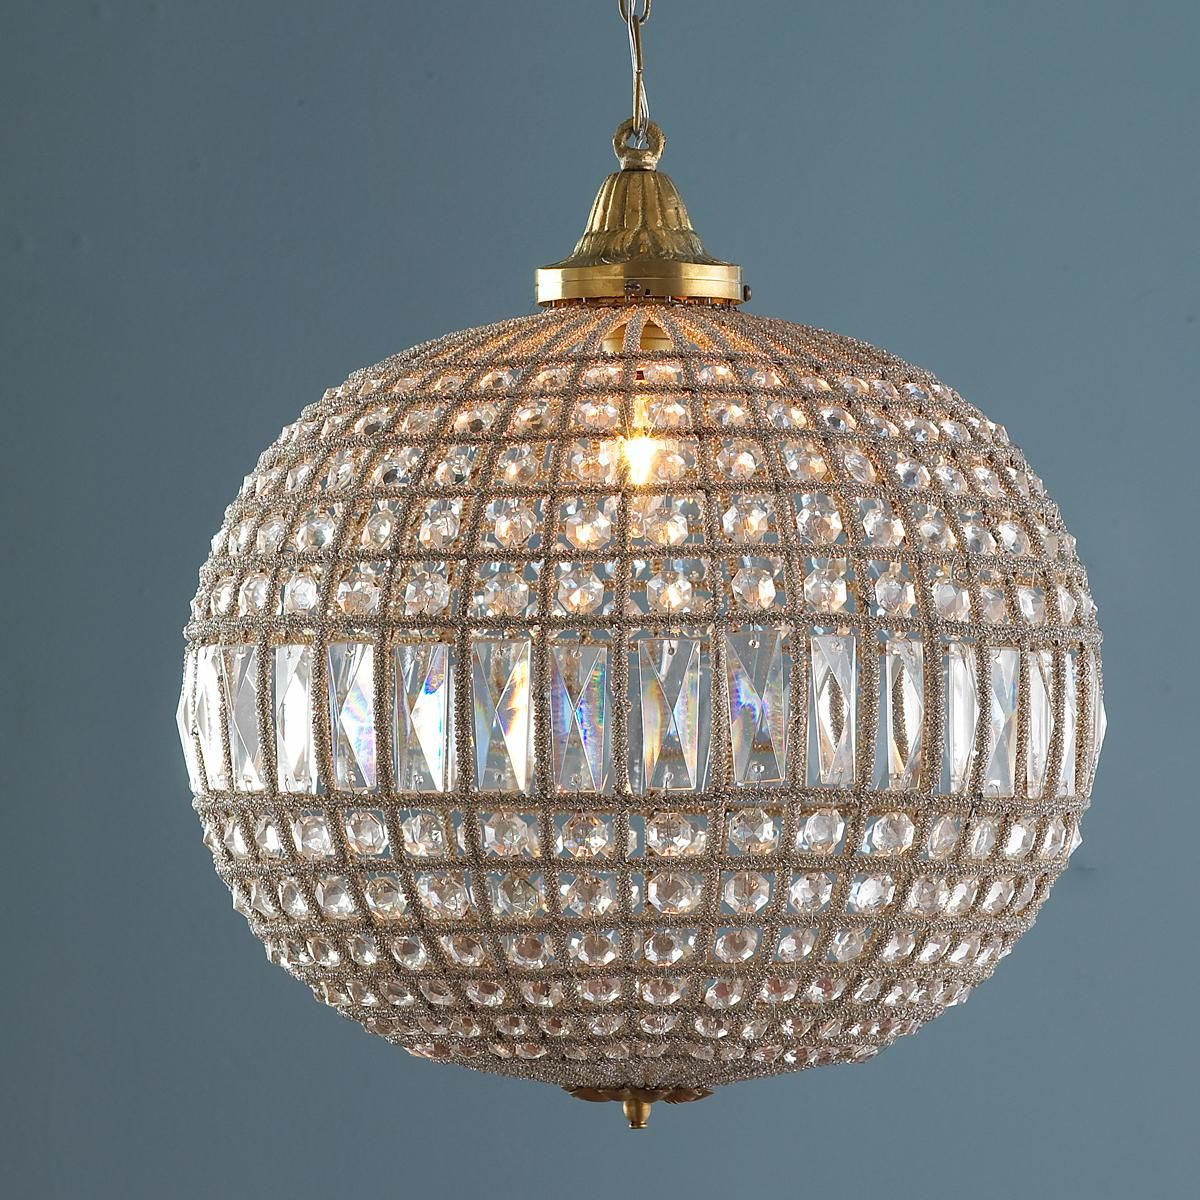 Vintage crystal ball chandelier for the home pinterest crystal vintage crystal ball chandelier arubaitofo Images